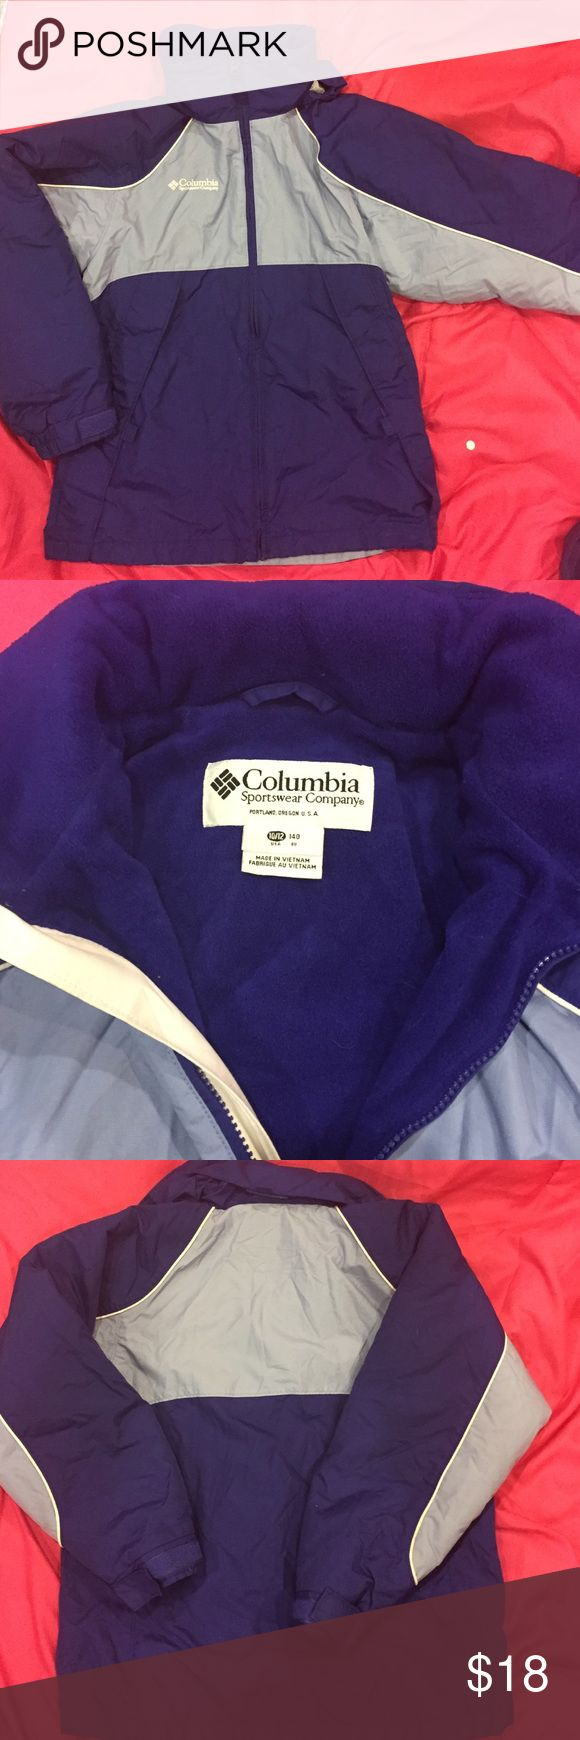 💜Size 10/12 Girls Columbia coat Size 10/12 Girls Columbia coat.  Has a roll up hood.  Cute, cozy, and warm.  Gently pre-owned. Columbia Jackets & Coats